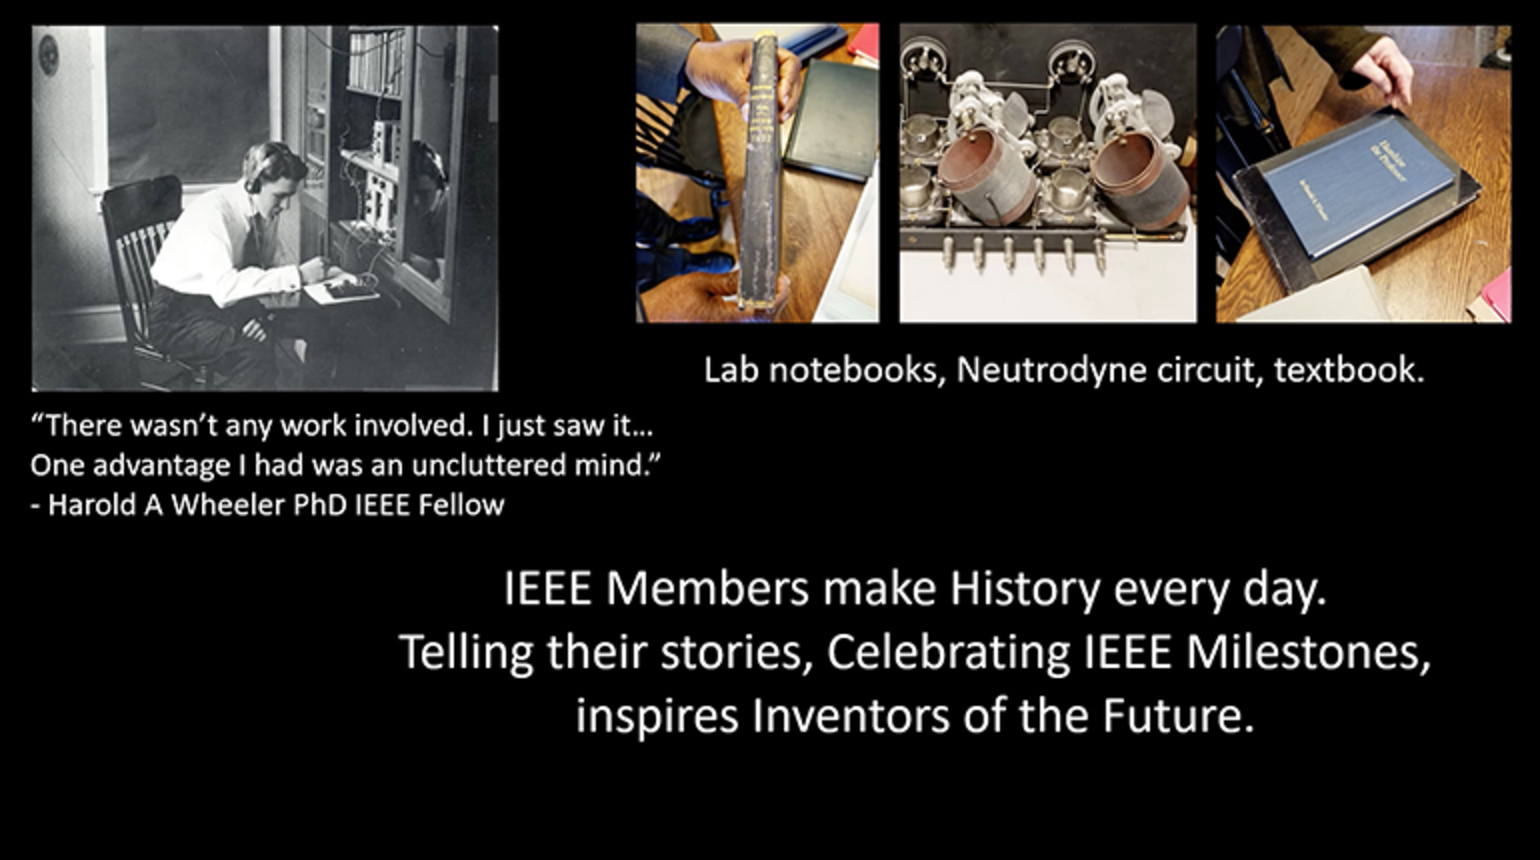 Neutrodyne Circuit: IEEE Day Future Milestone